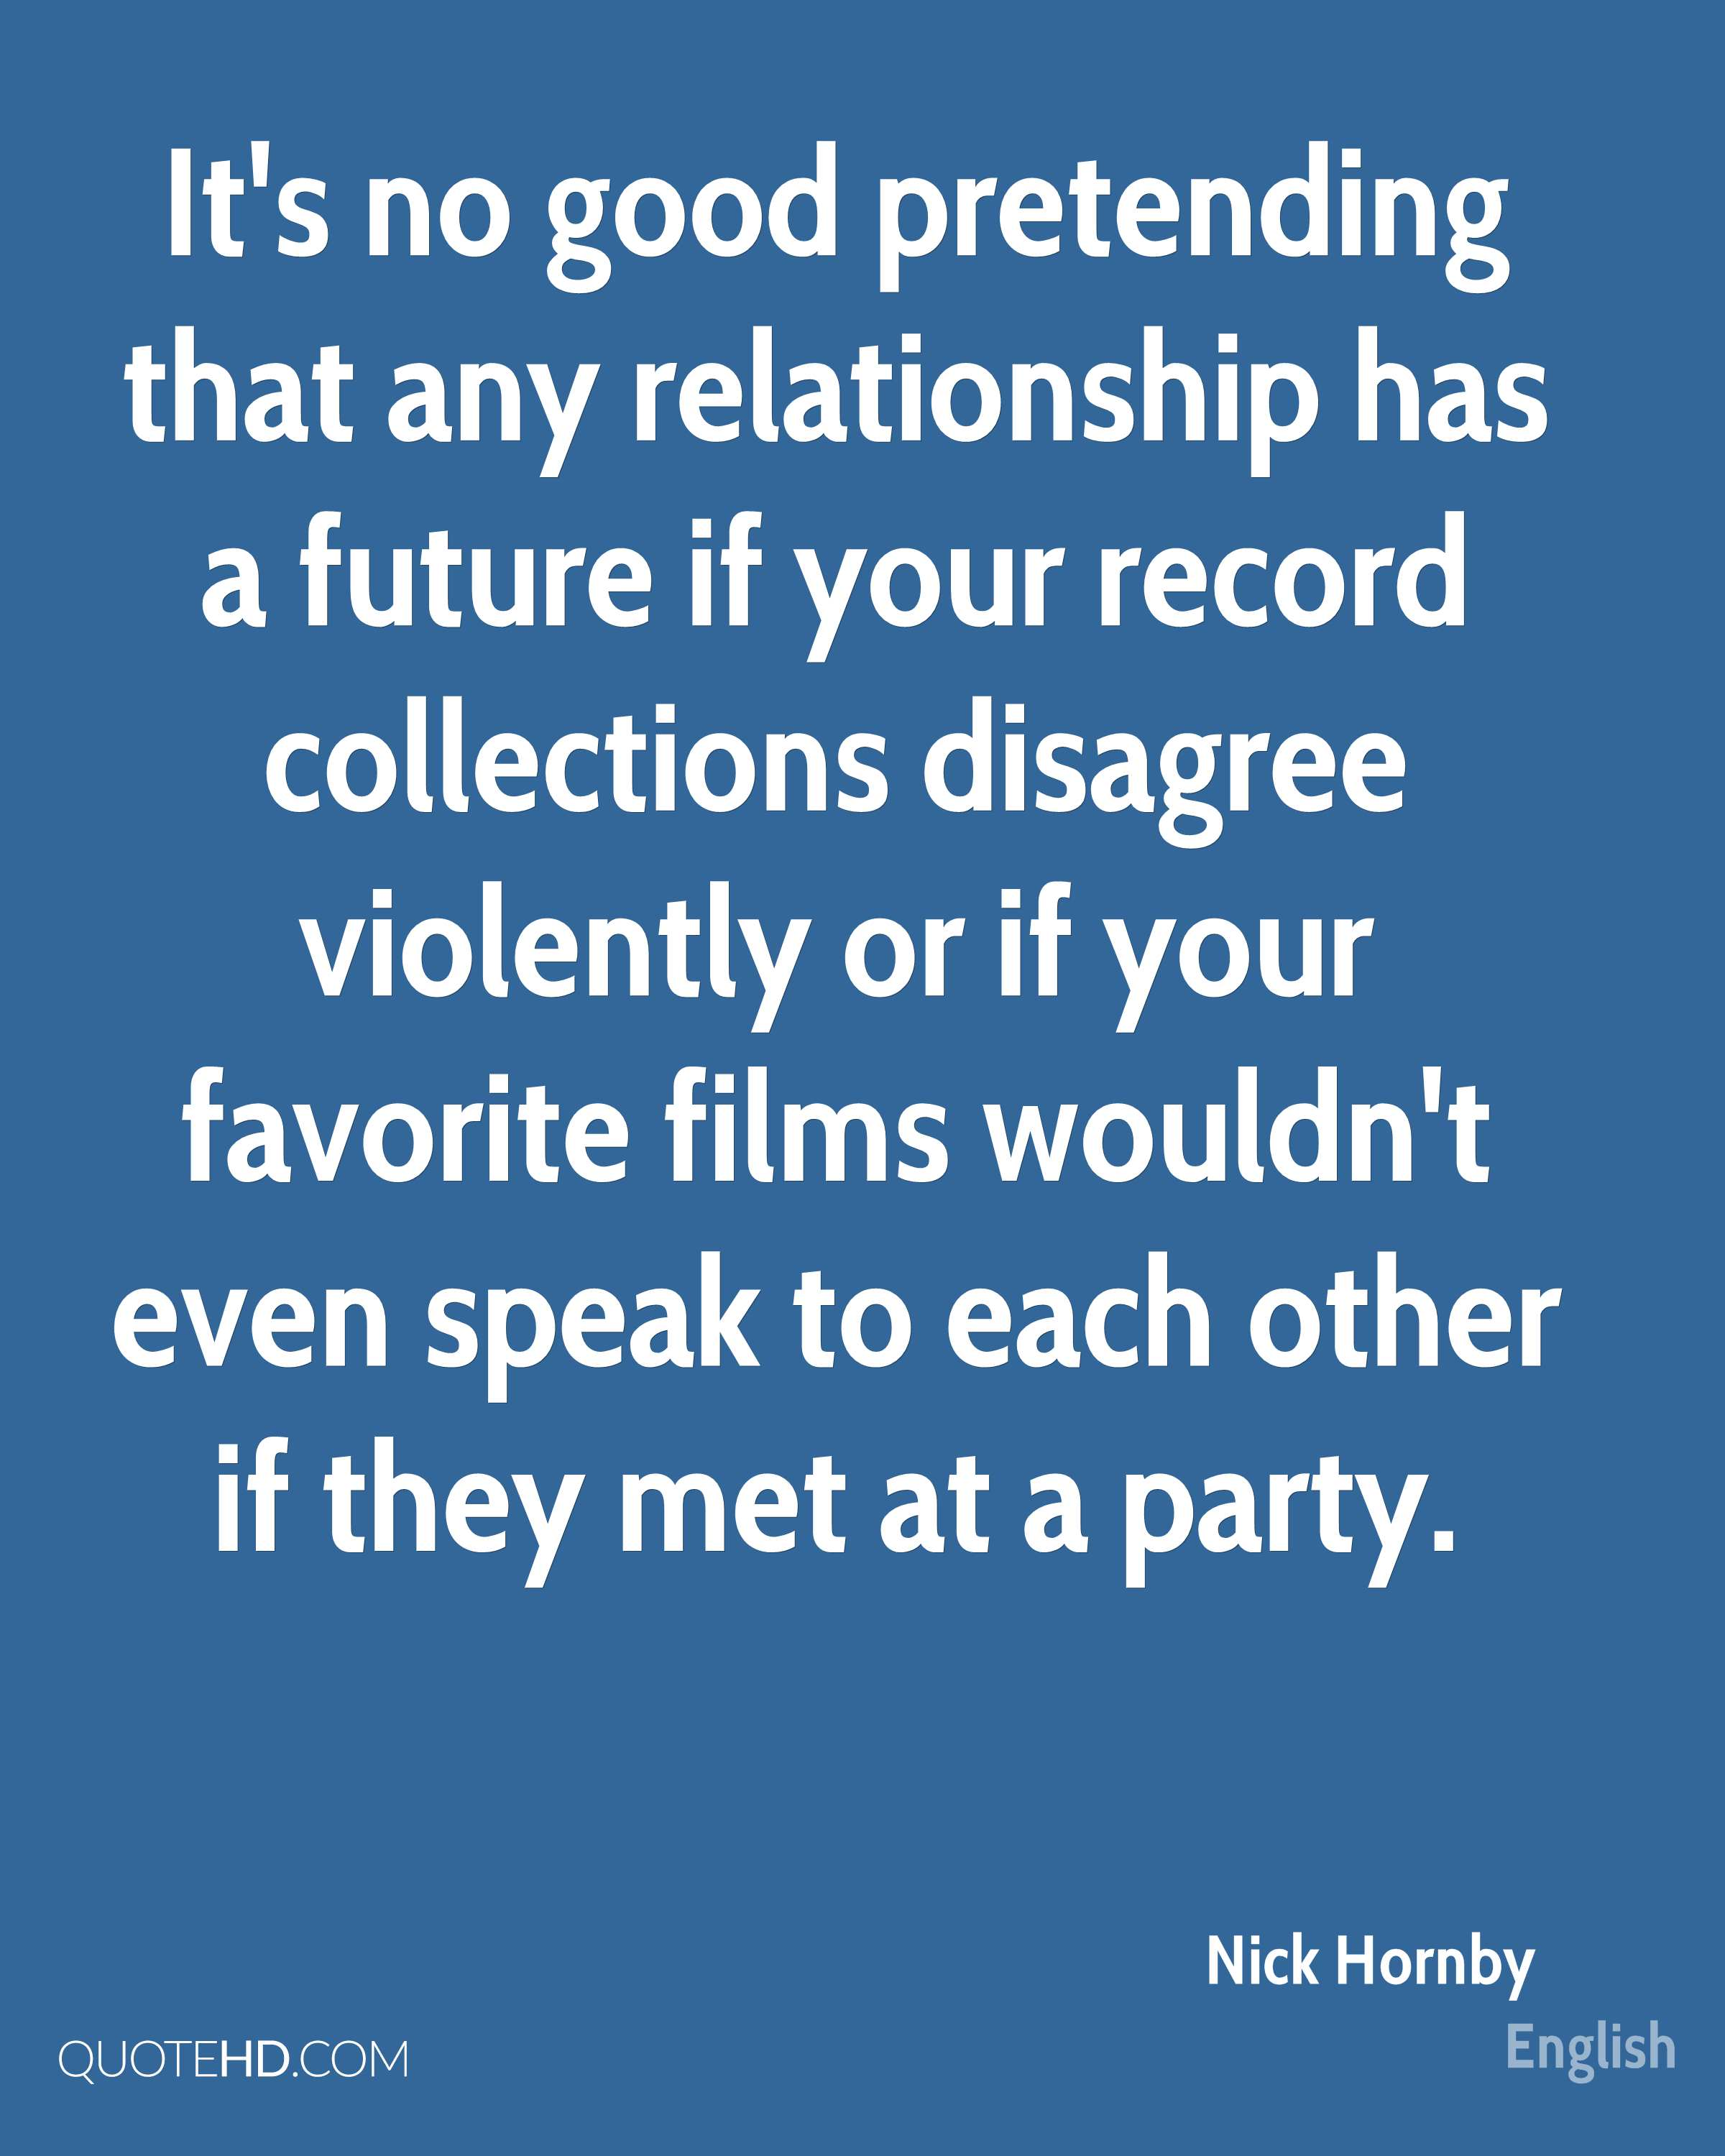 It's no good pretending that any relationship has a future if your record collections disagree violently or if your favorite films wouldn't even speak to each other if they met at a party.